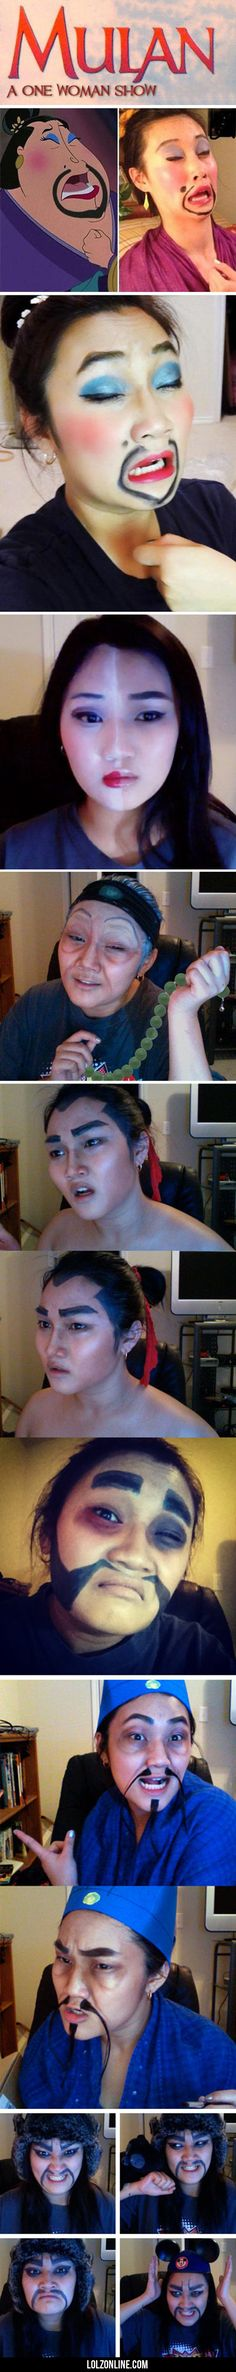 Mulan One Woman Show #lol #haha #funny